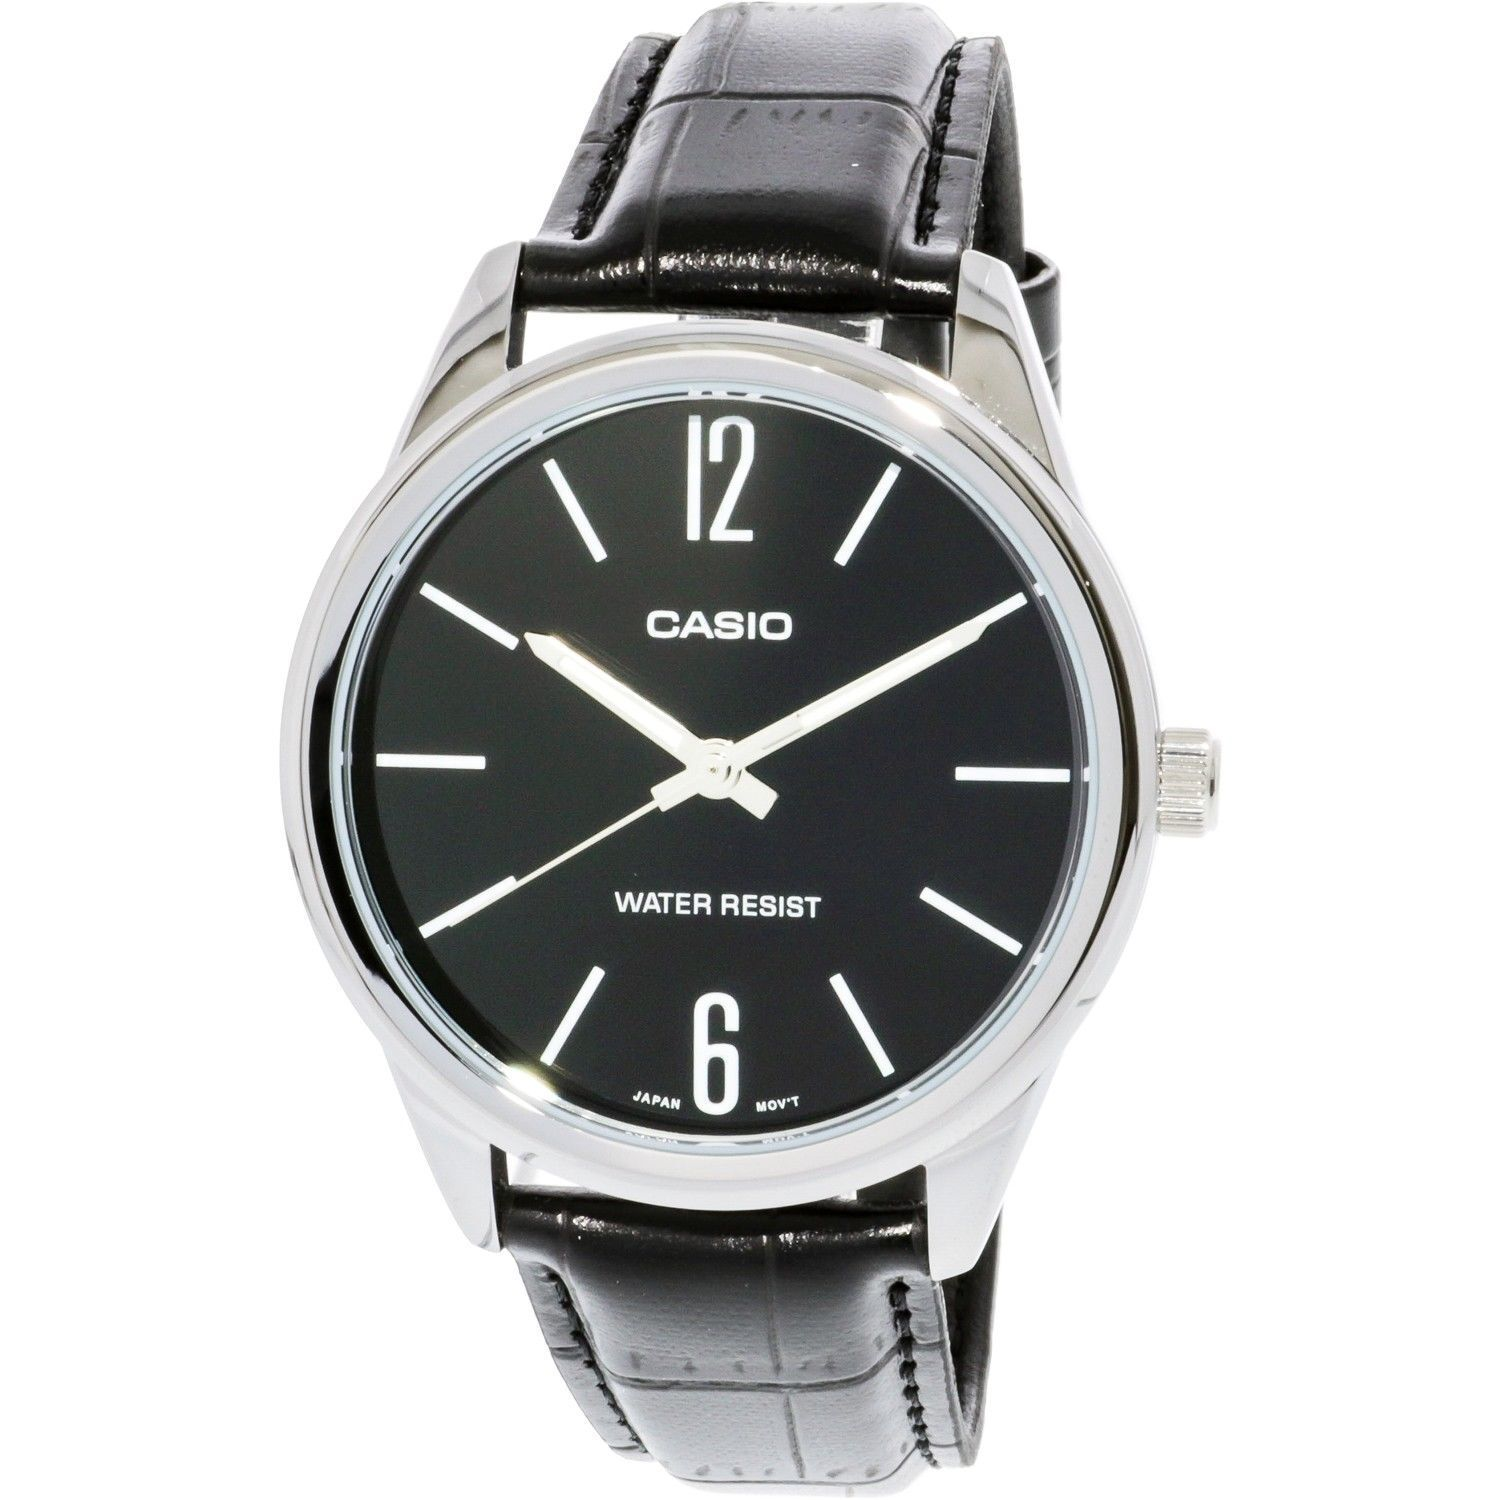 a334068d8fda NEW Casio MTP-V005L-1B Men s Analog Watch BLACK Leather Band Black Dial WR